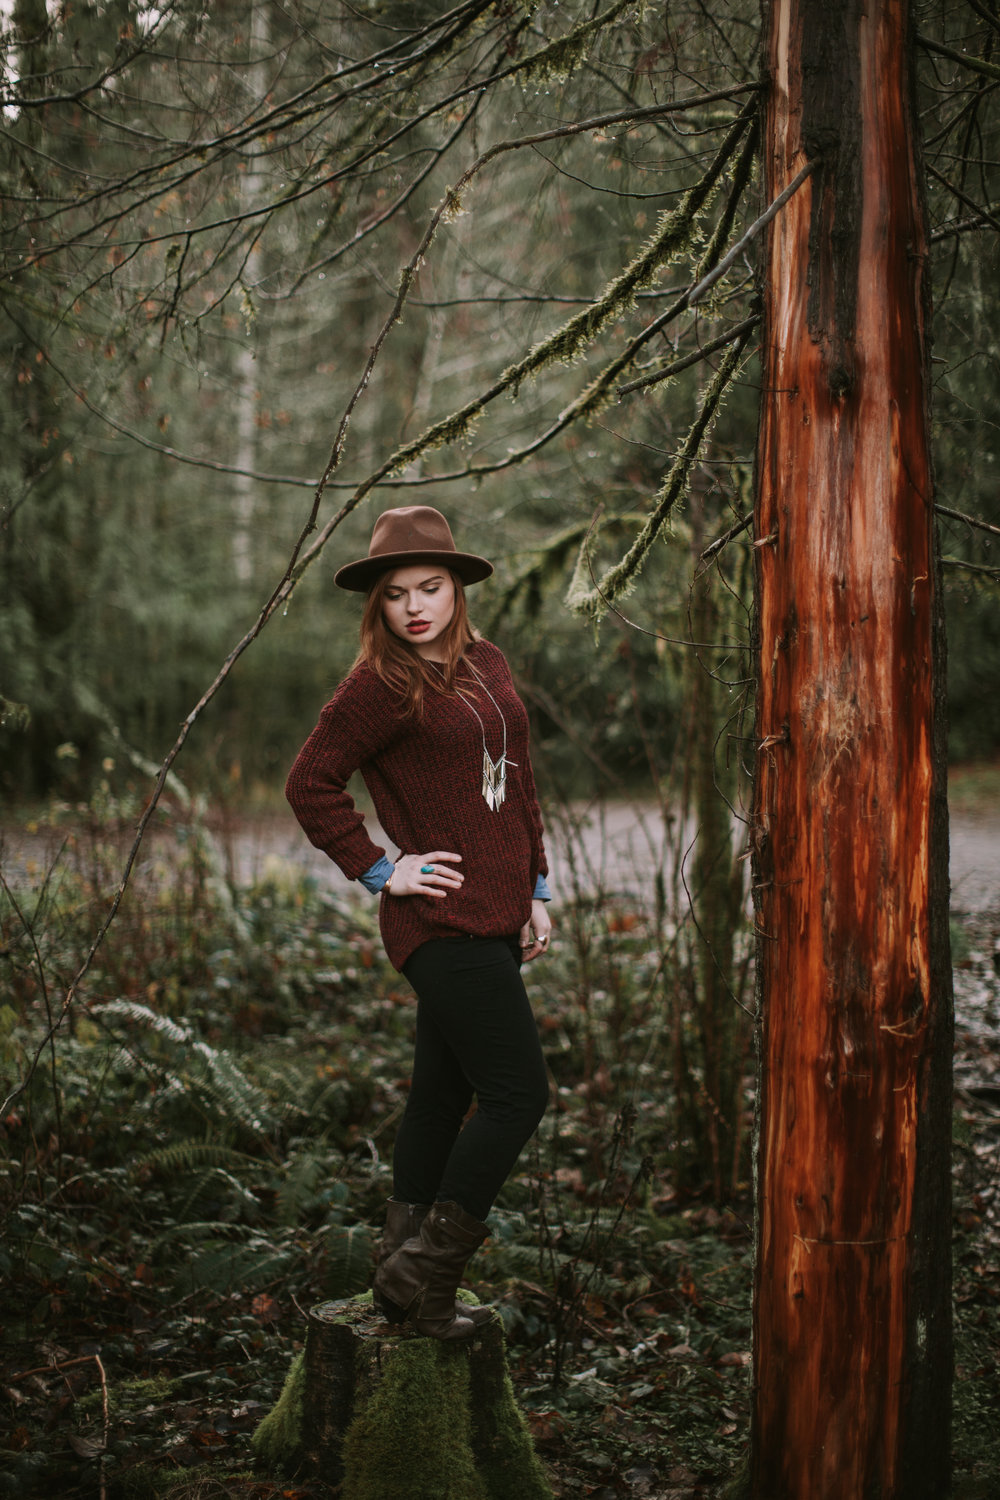 Port-Angeles-portrait-olympic-peninsula-photographer-kayla-dawn-photography-kayladawnphoto14.jpg